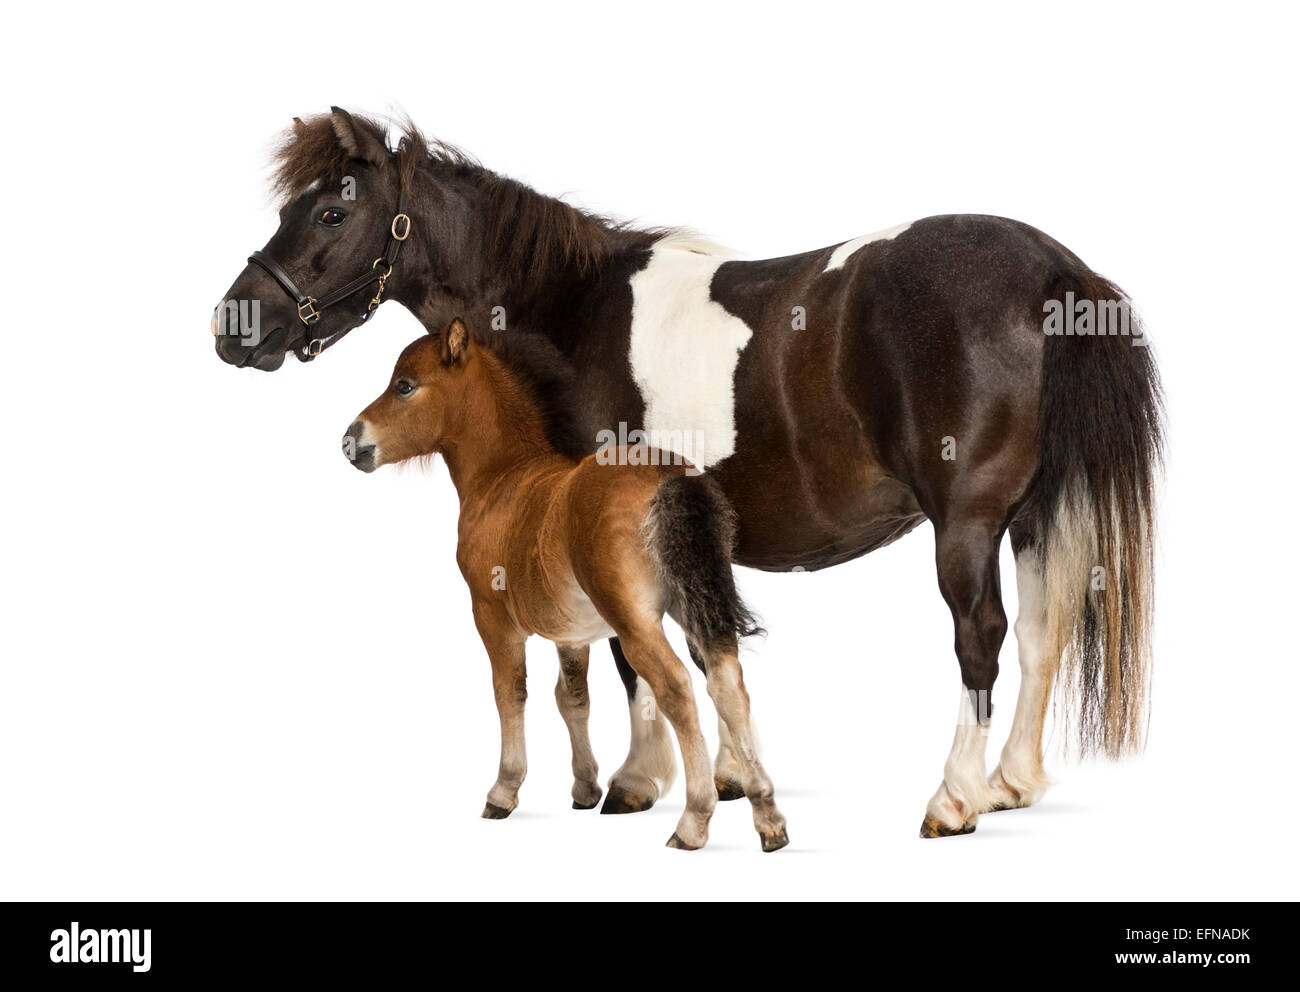 Shetland pony and foal, 12 years old and 1 month old, standing in front of white background Stock Photo